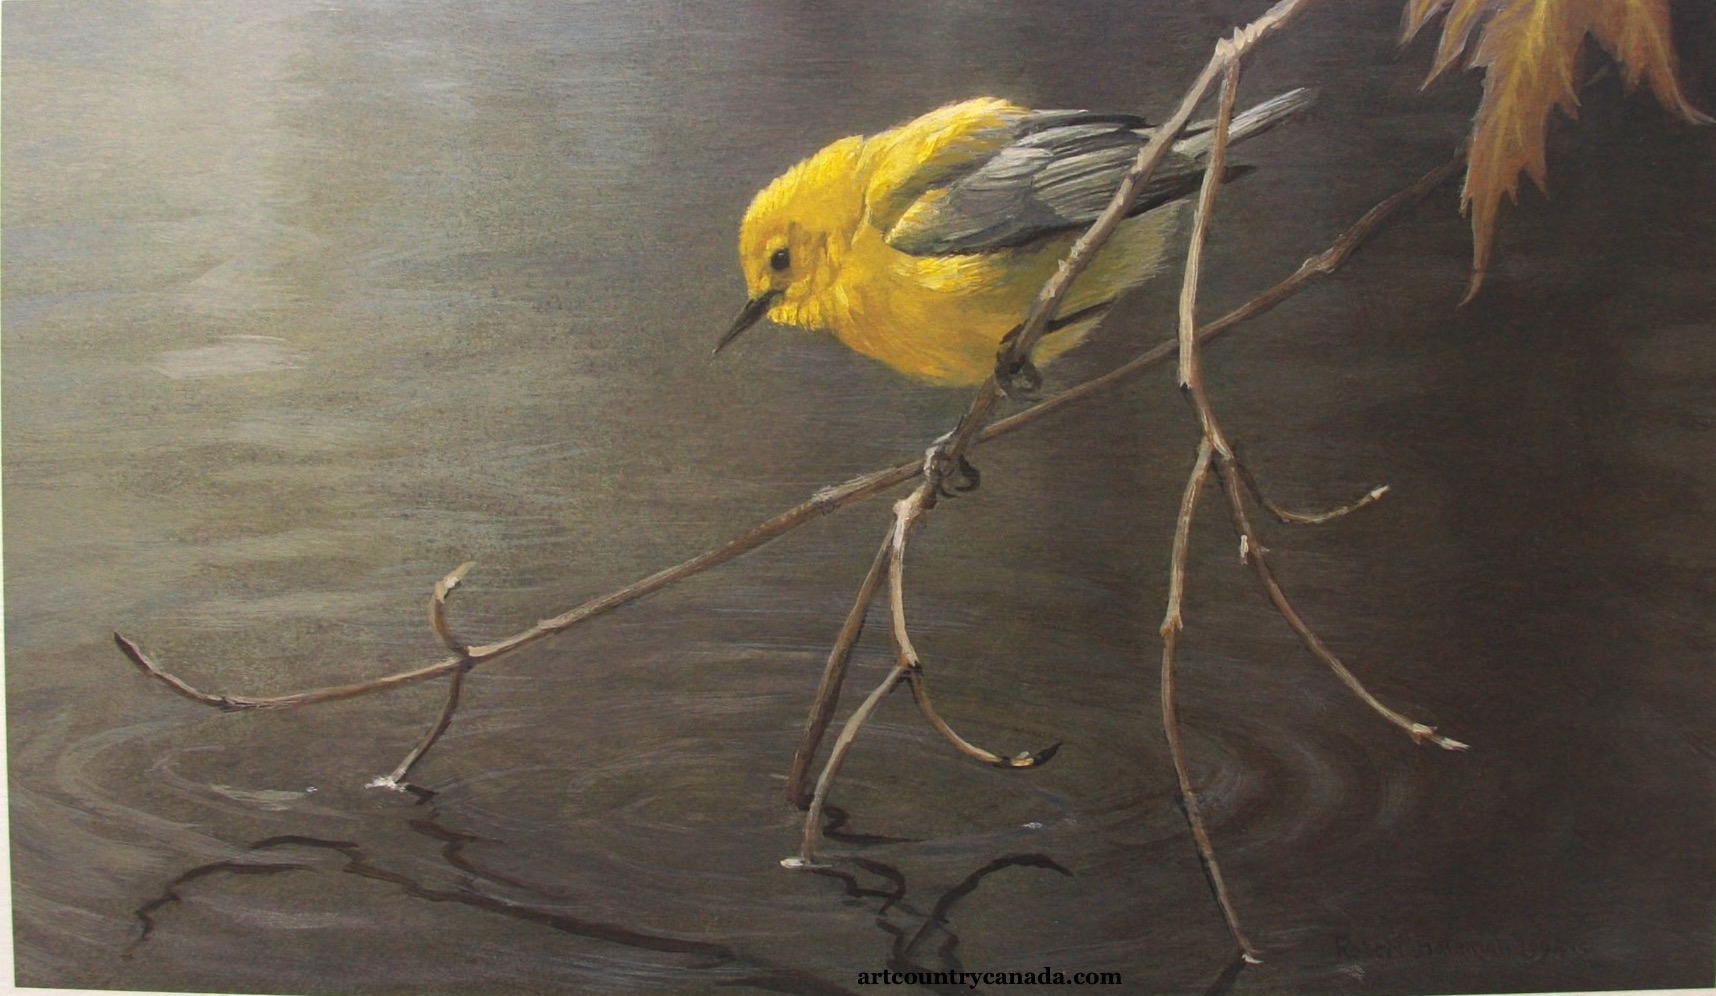 CLICK HERE OR IMAGE TO RETURN THE Robert Bateman P PAGE